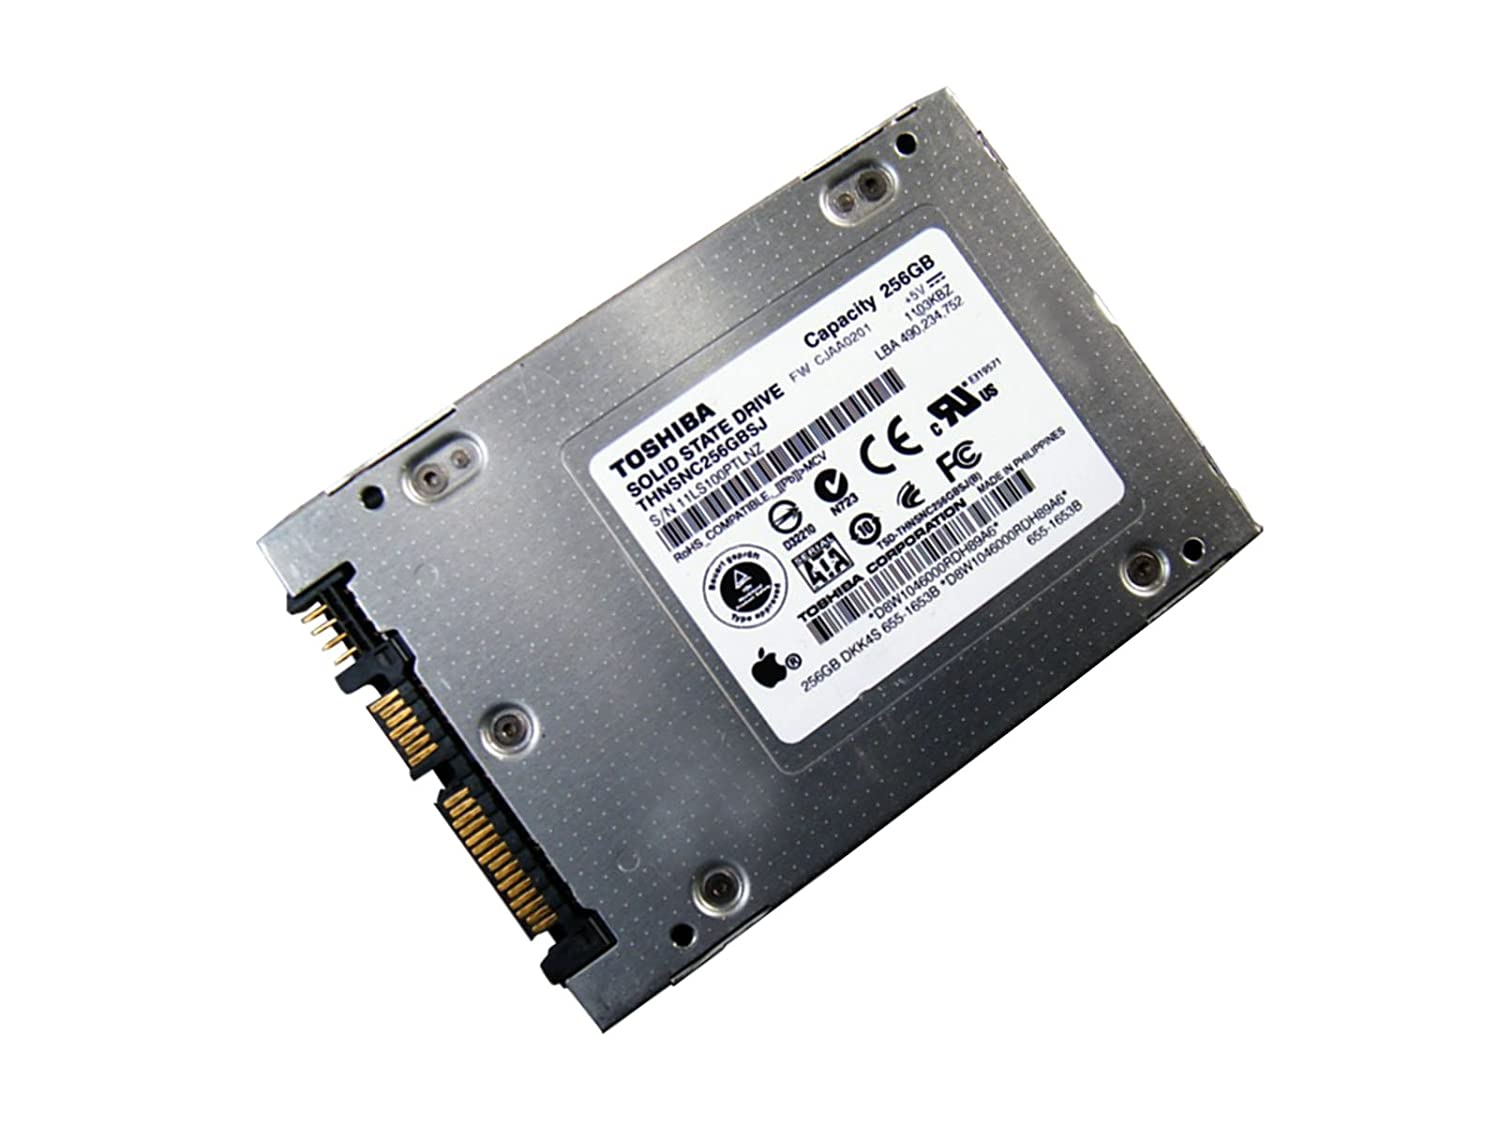 Toshiba Thnsnc256Gbsj 9,5 mm 2,5 Sata 256 GB Disco Duro SSD 3,0 GB ...